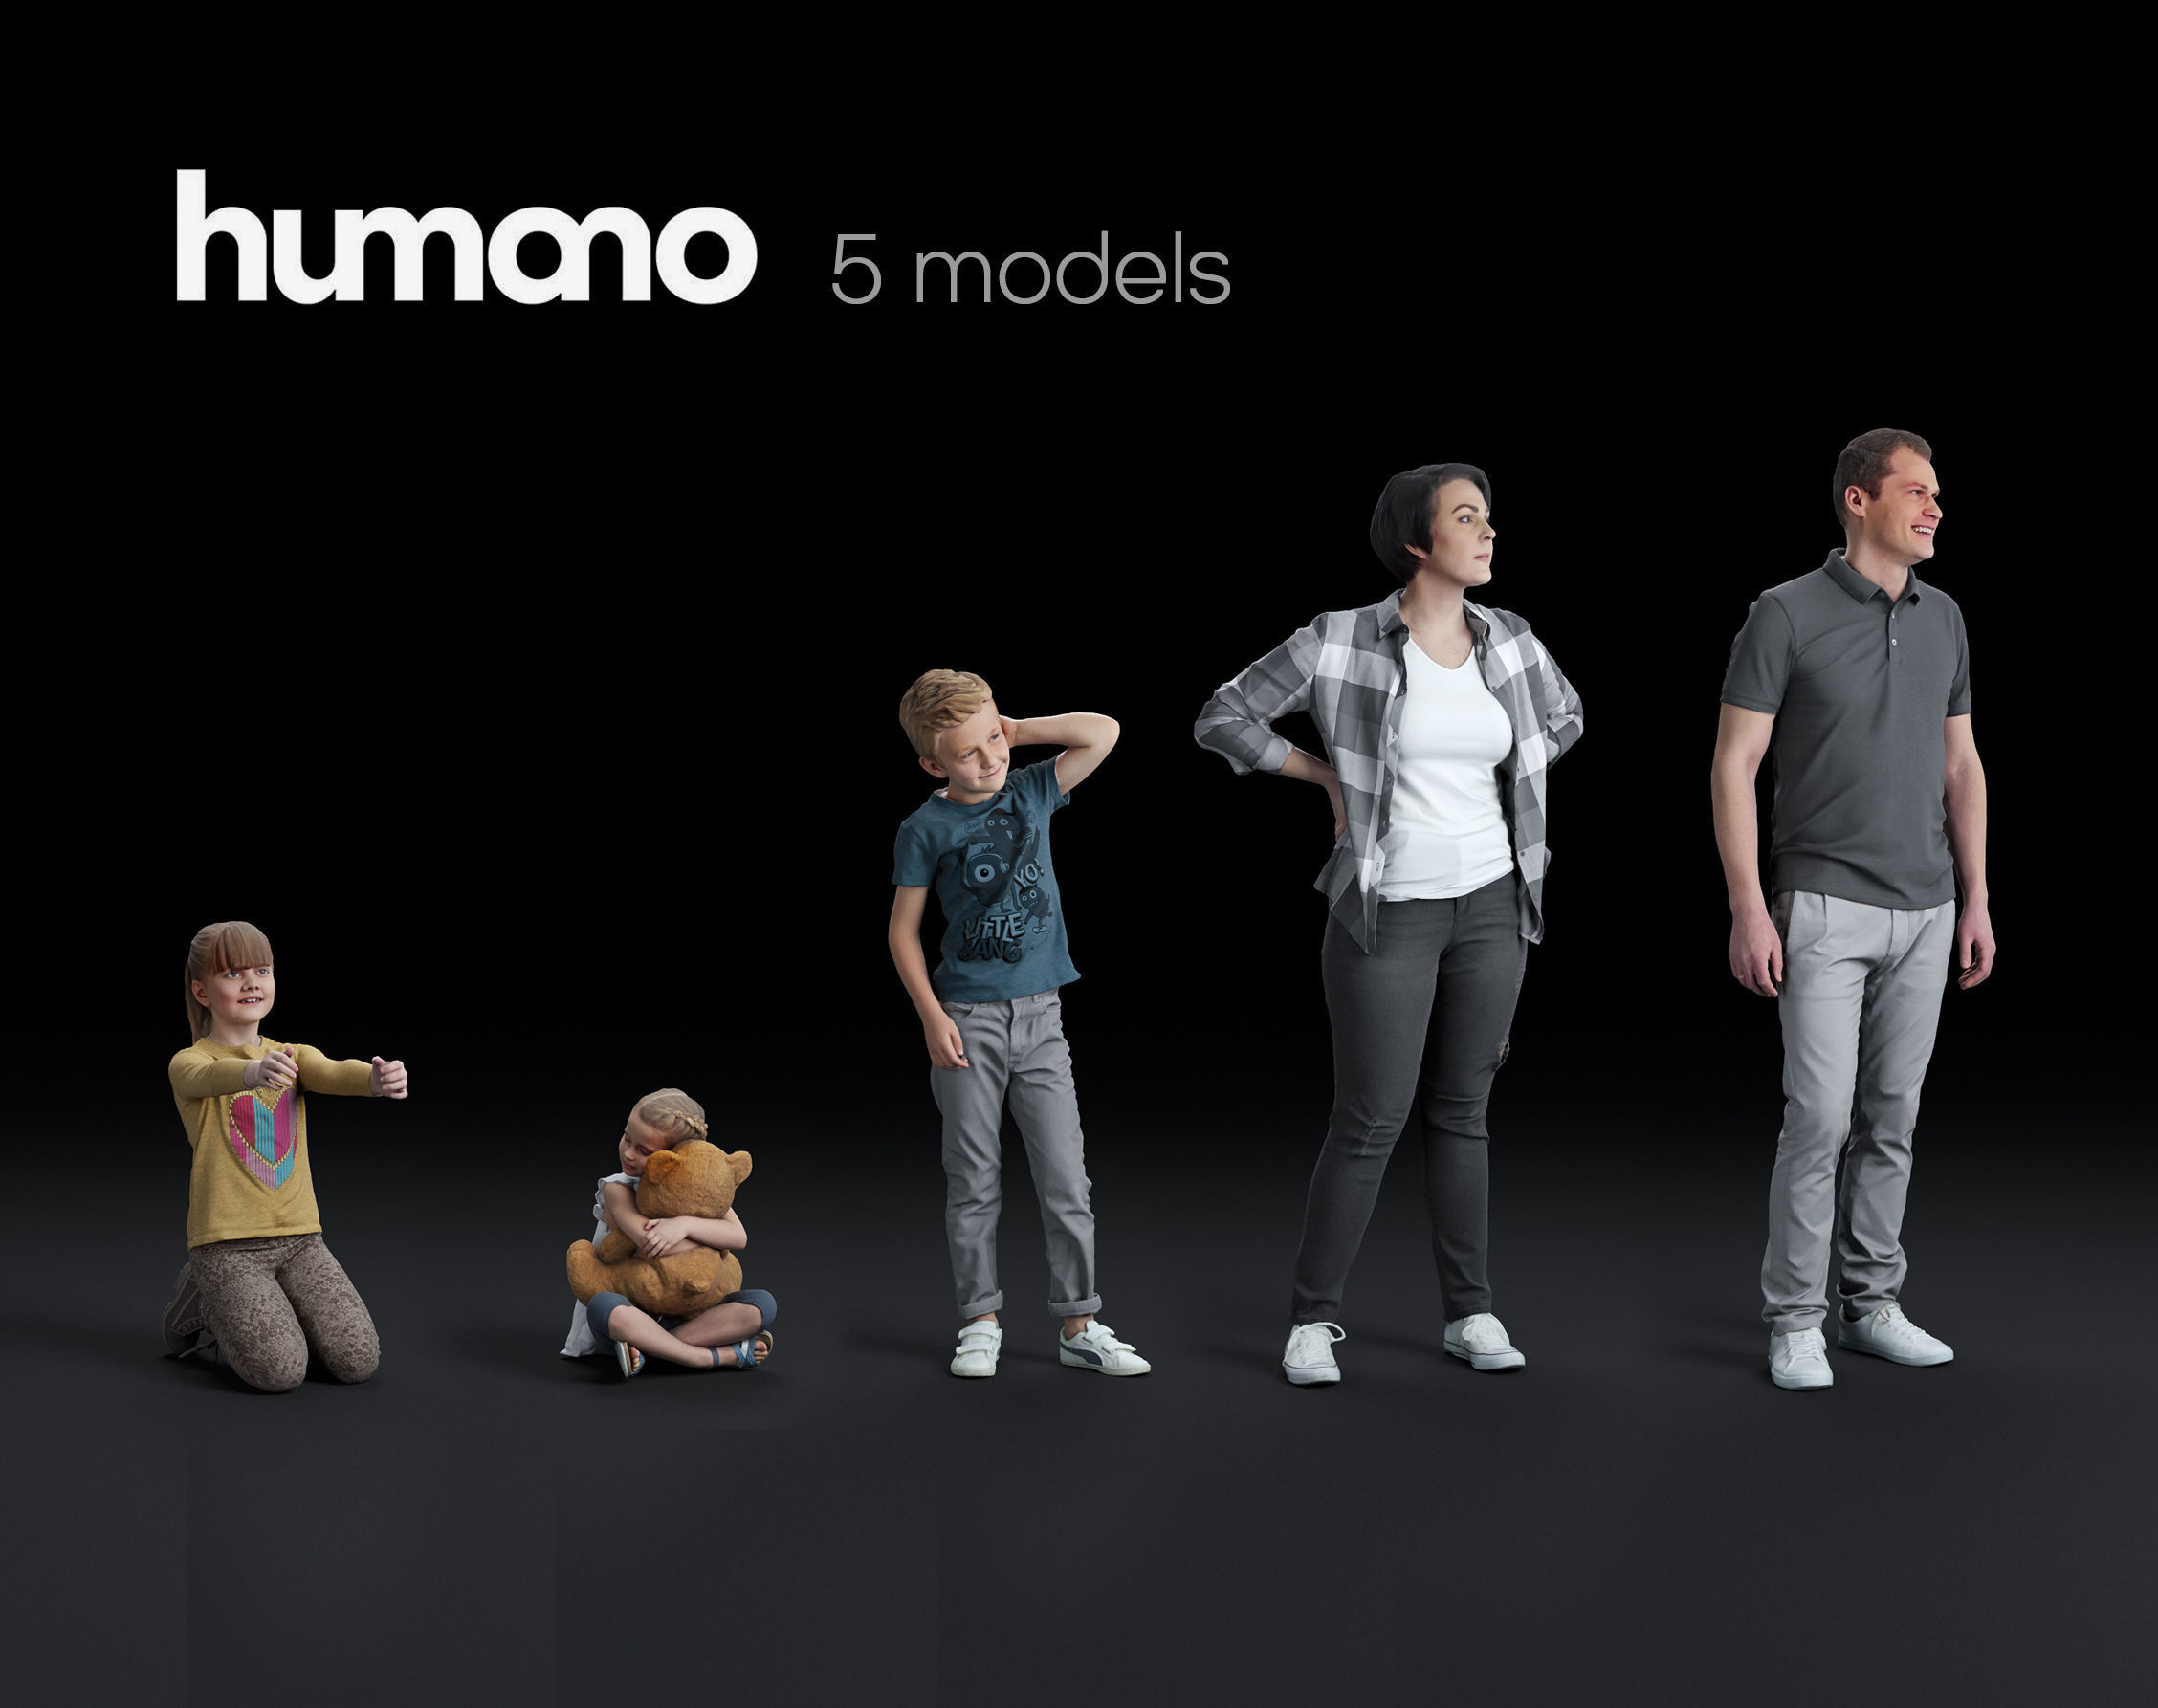 Humano 5-Pack - PEOPLE - CASUAL - HOME - 5x 3d models 05C